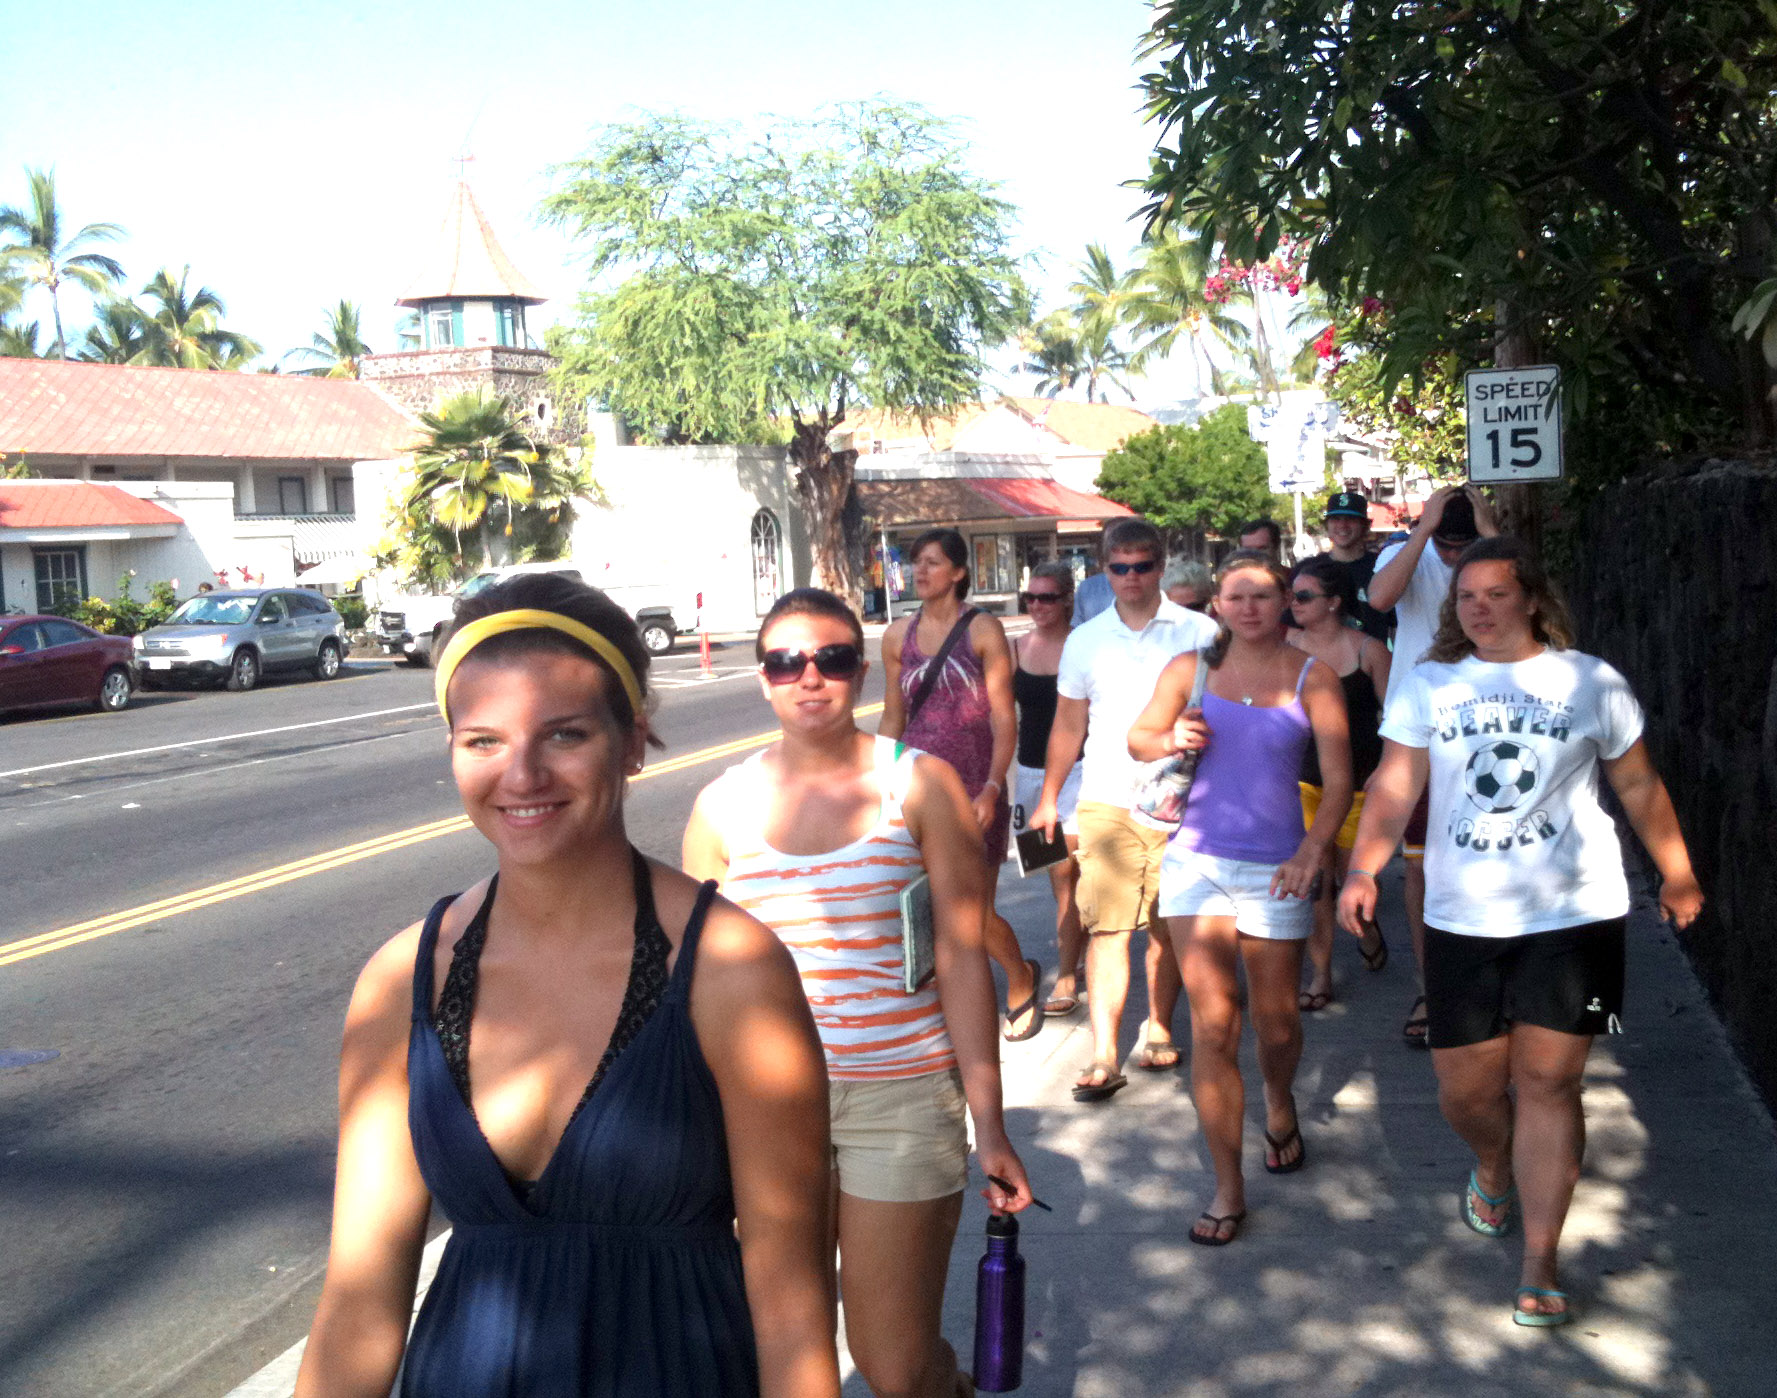 Is it OK with you? How would you rate Alii Drive on walkability?